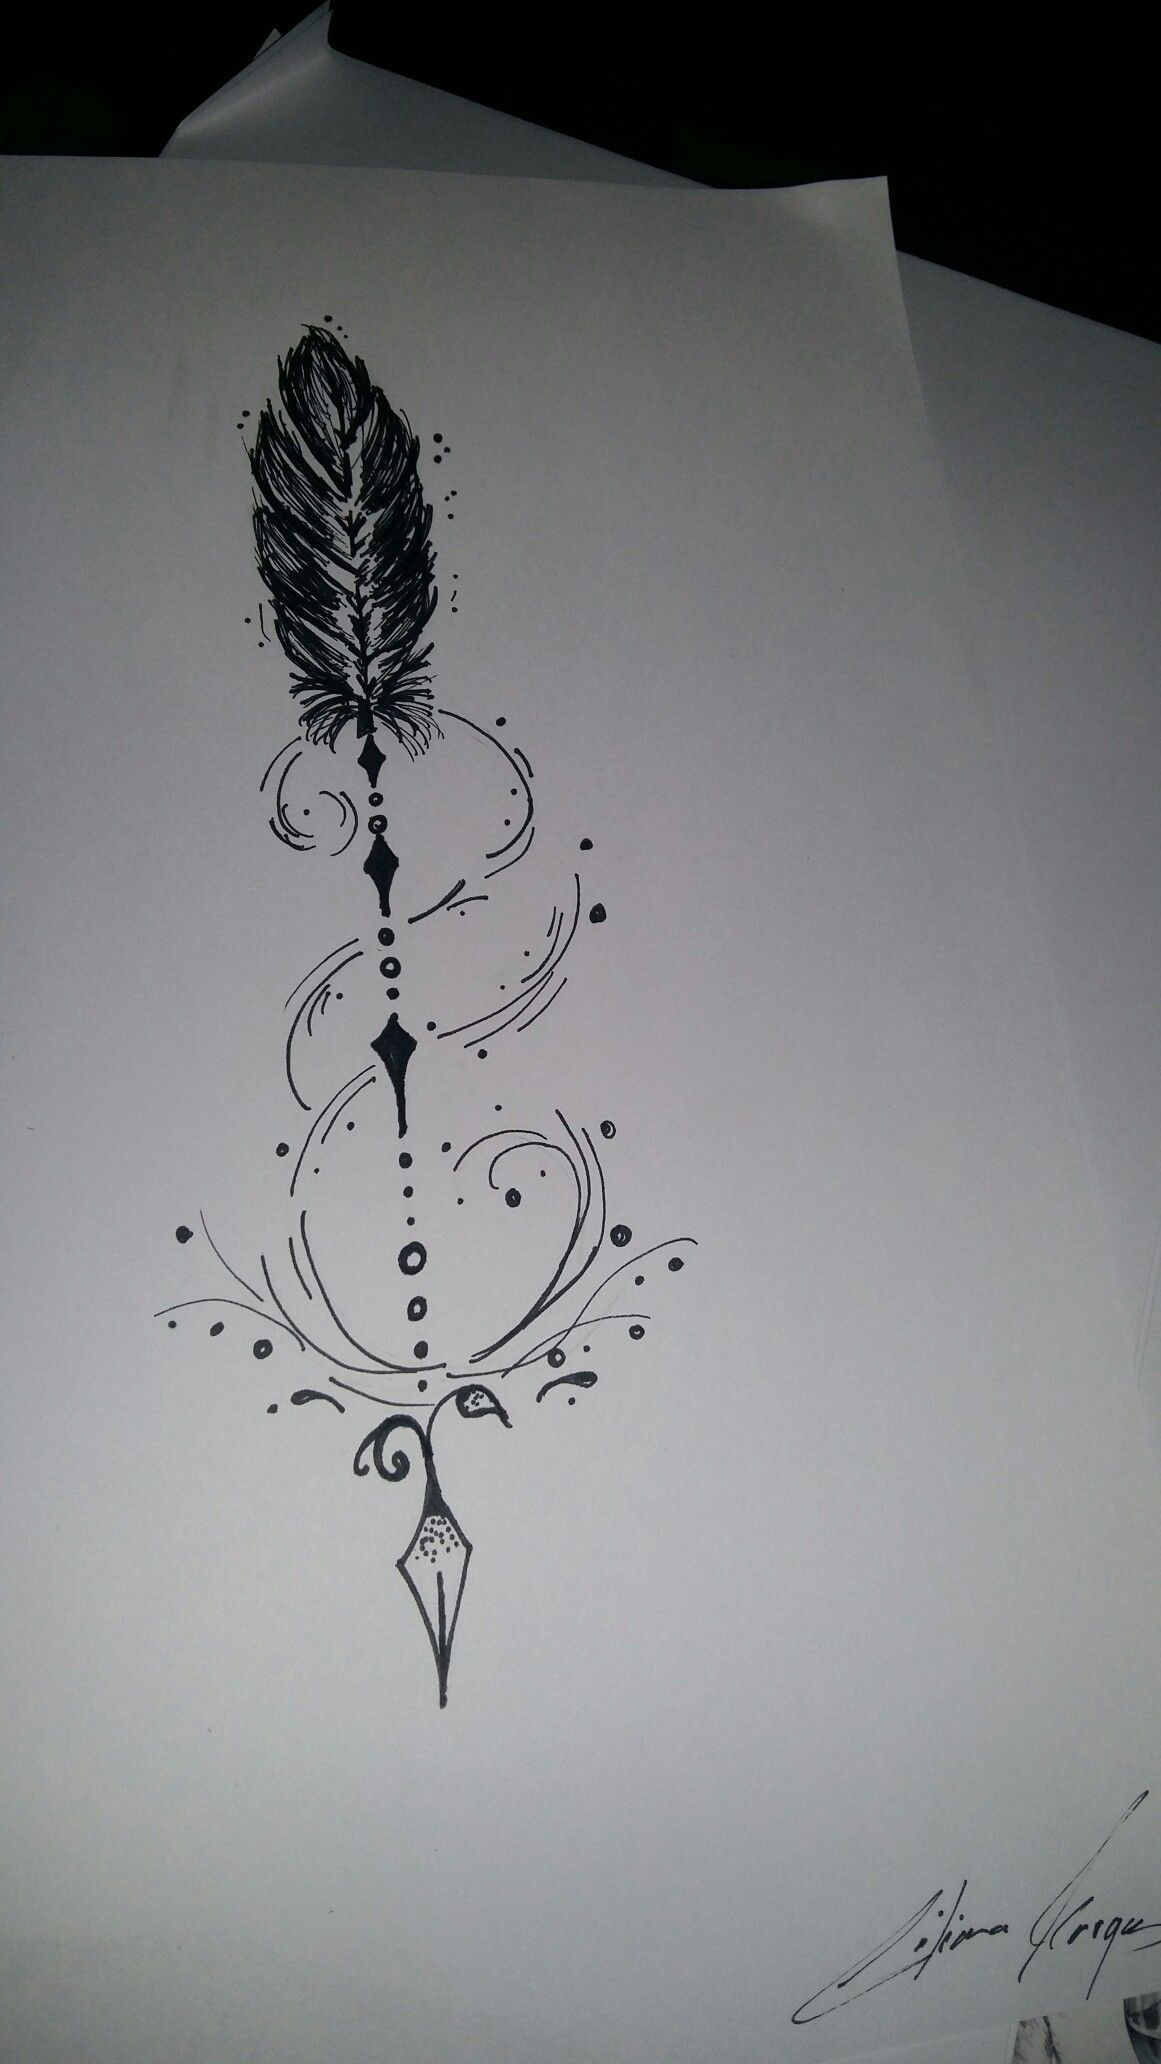 – – #arrowtattoo #dragontattooforwomen #tattoocrafts